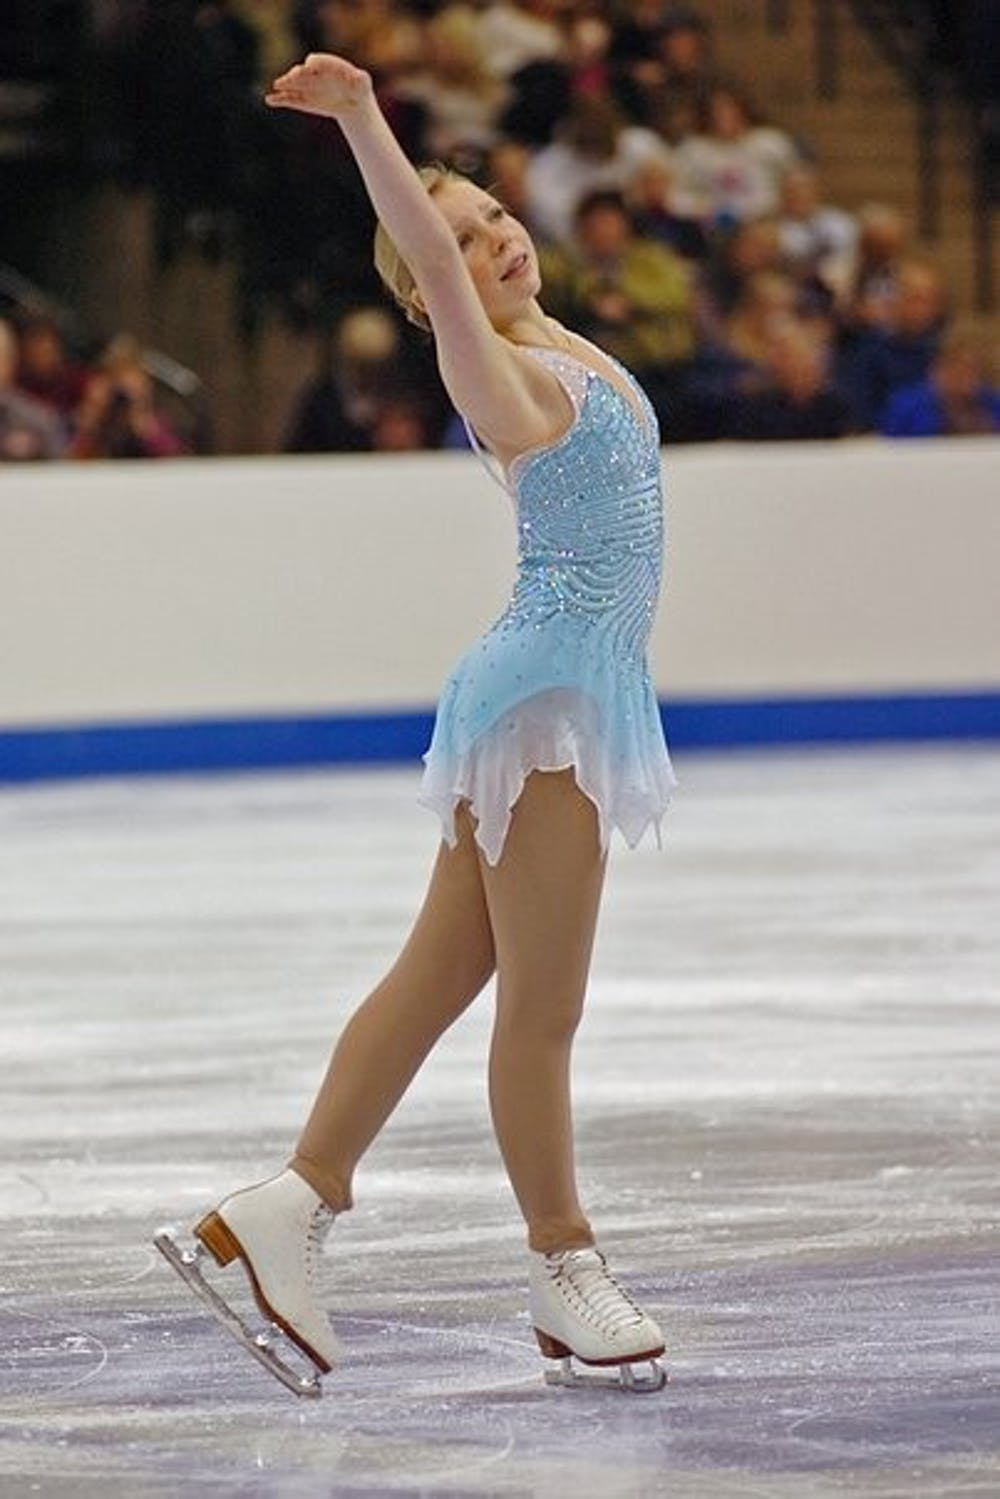 A former Olympic figure skater and UNC Ph.D. student is working to fight eating disorders